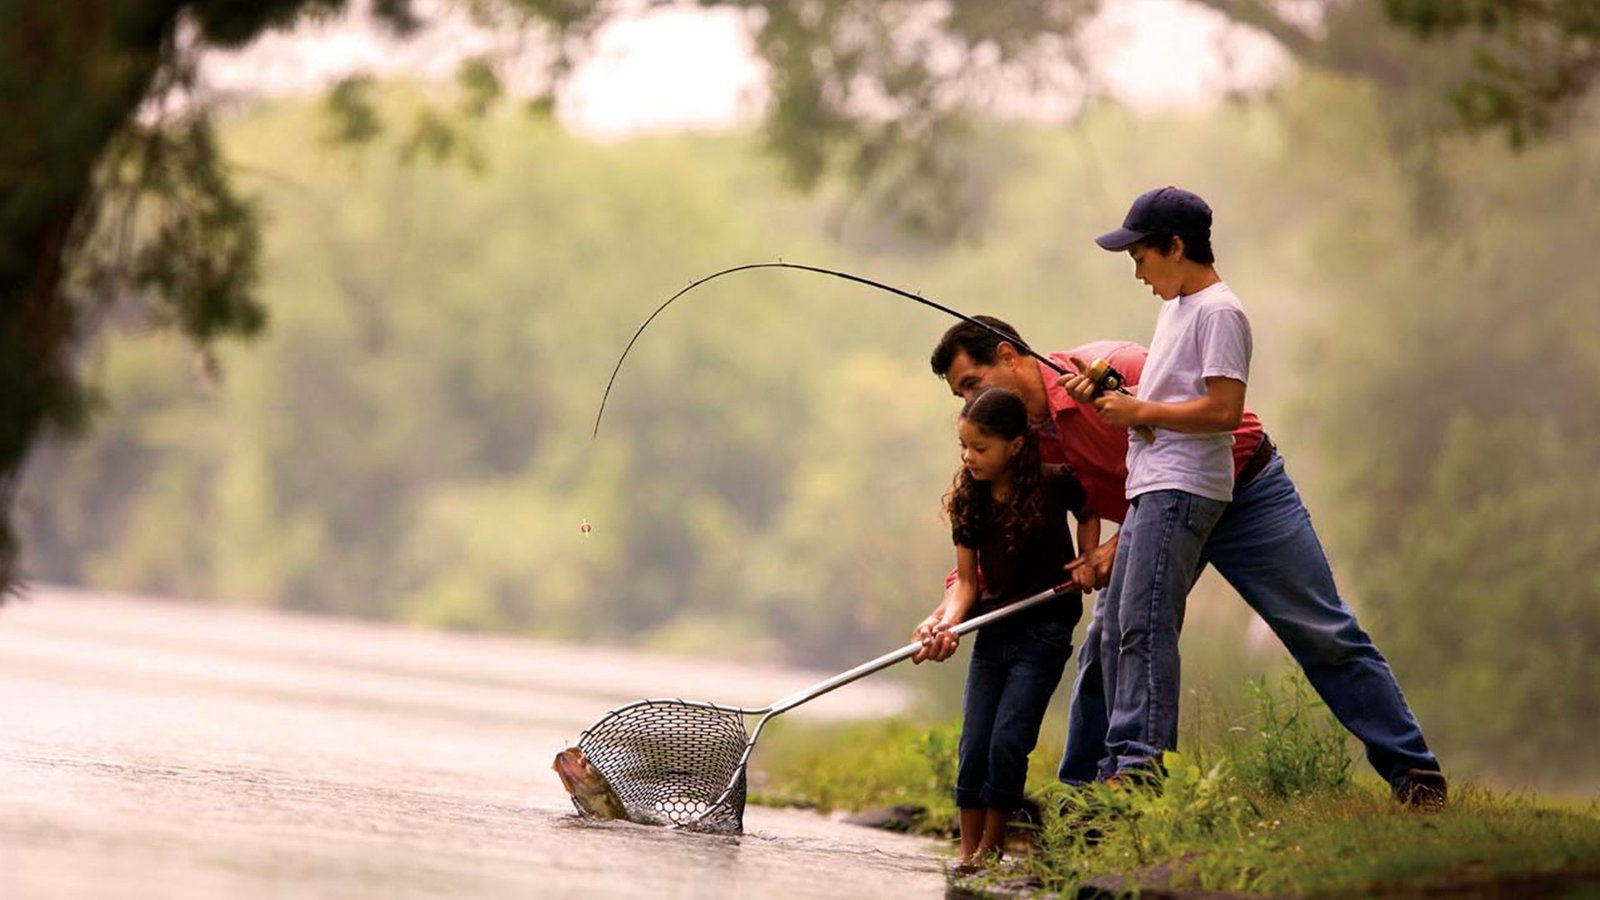 A family enjoying bait fishing